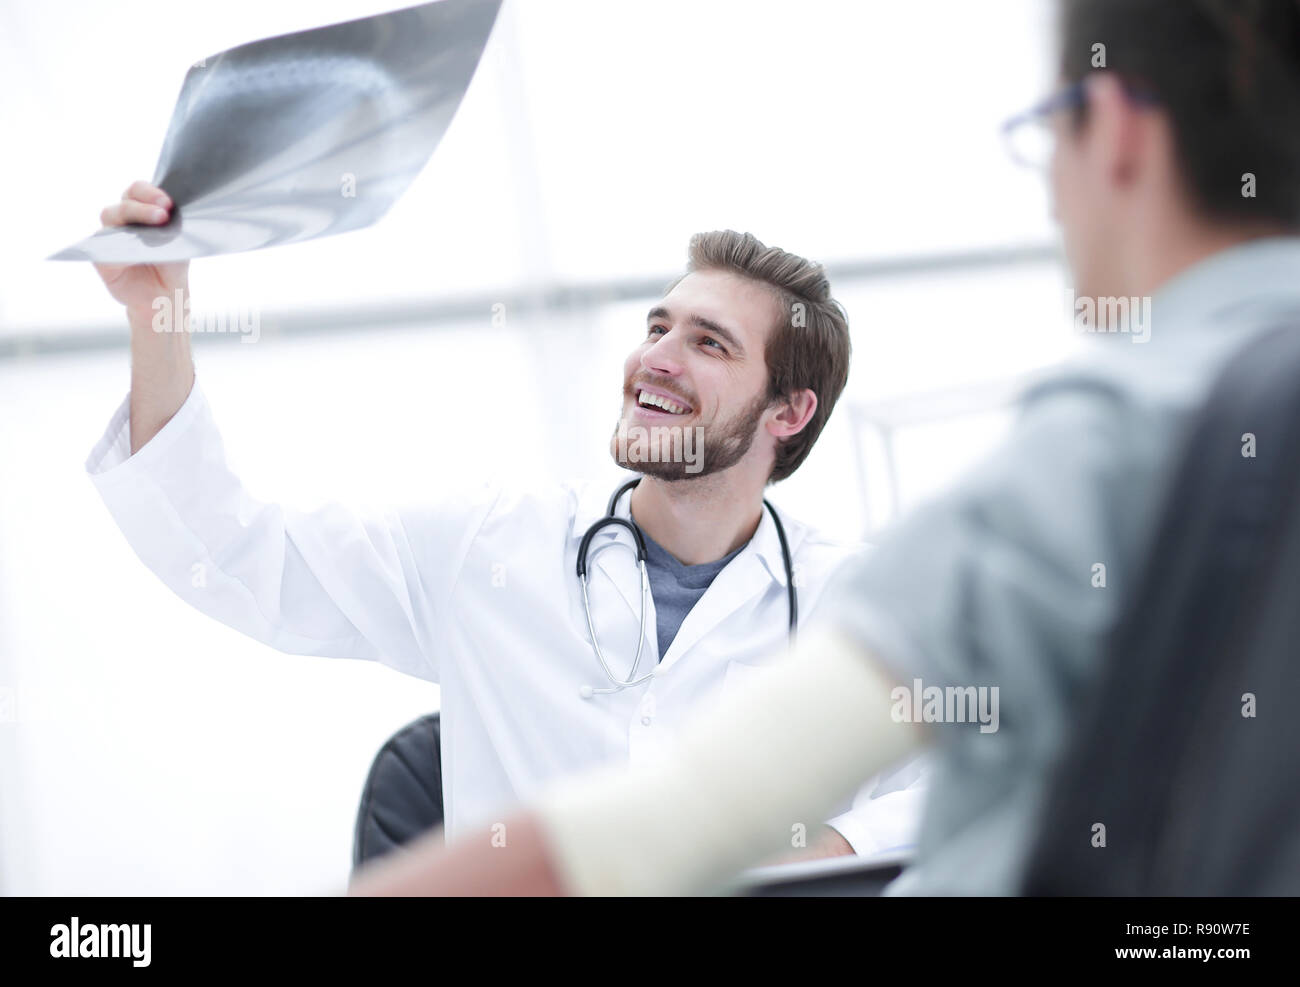 orthopedist examining a radiograph of a patient - Stock Image